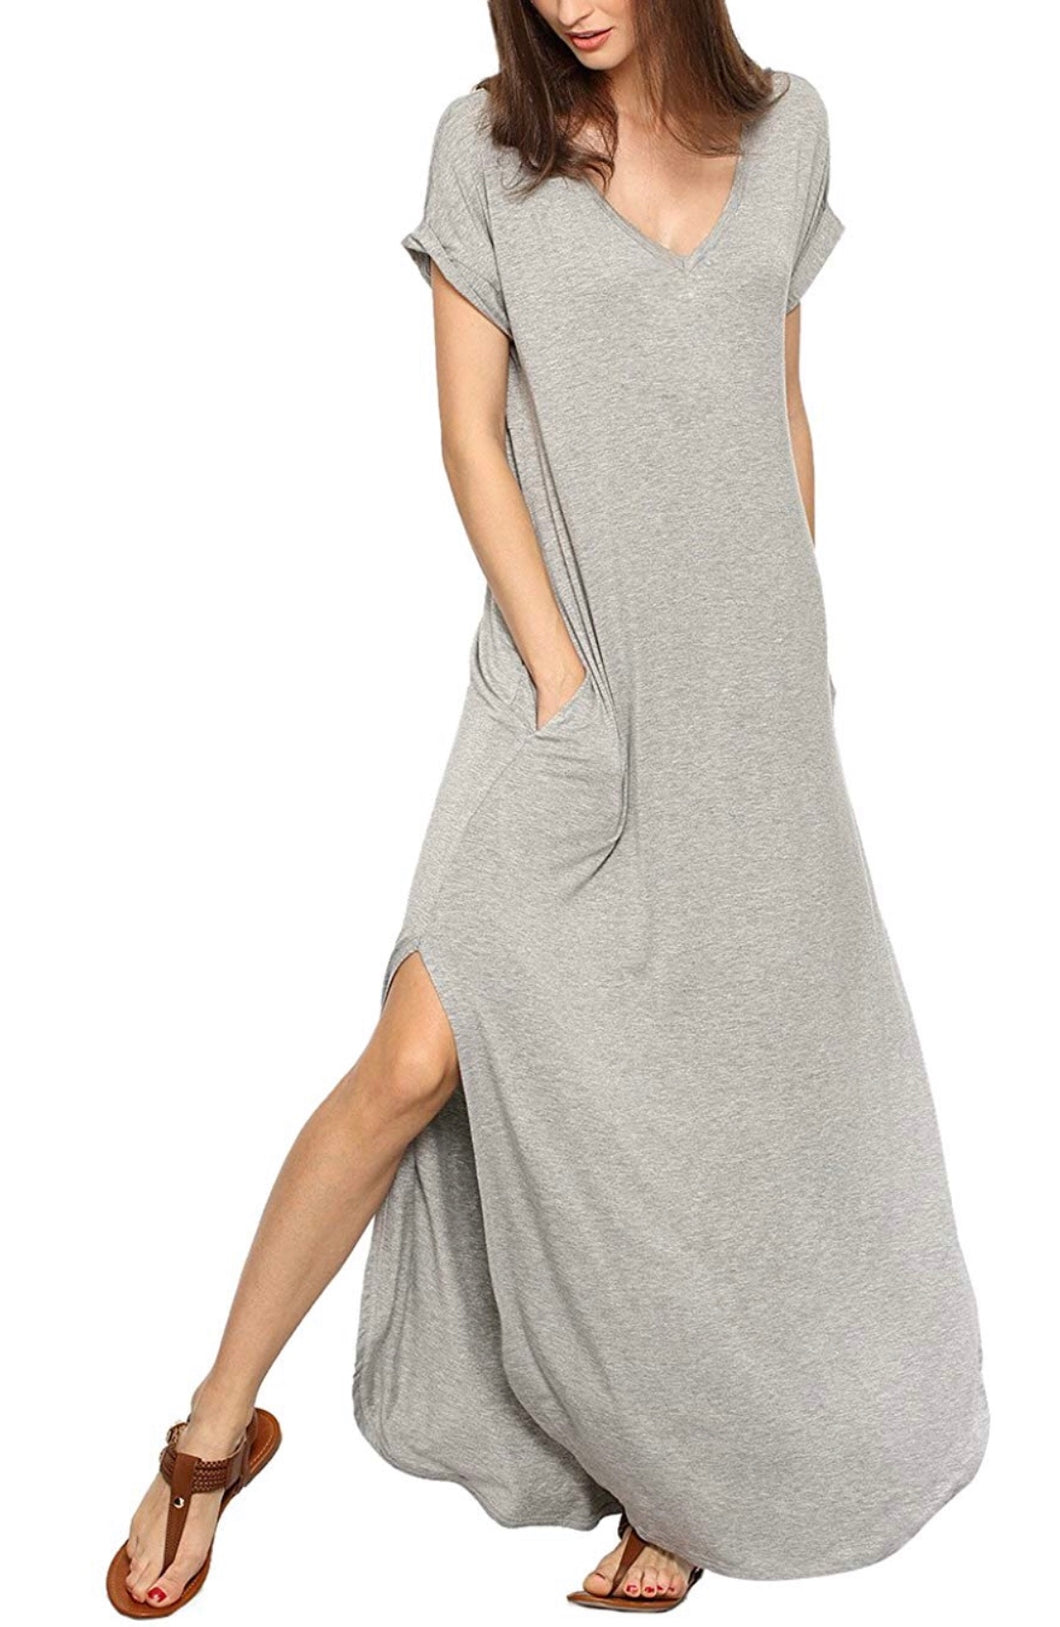 Summer Jersey Dress - Light Grey